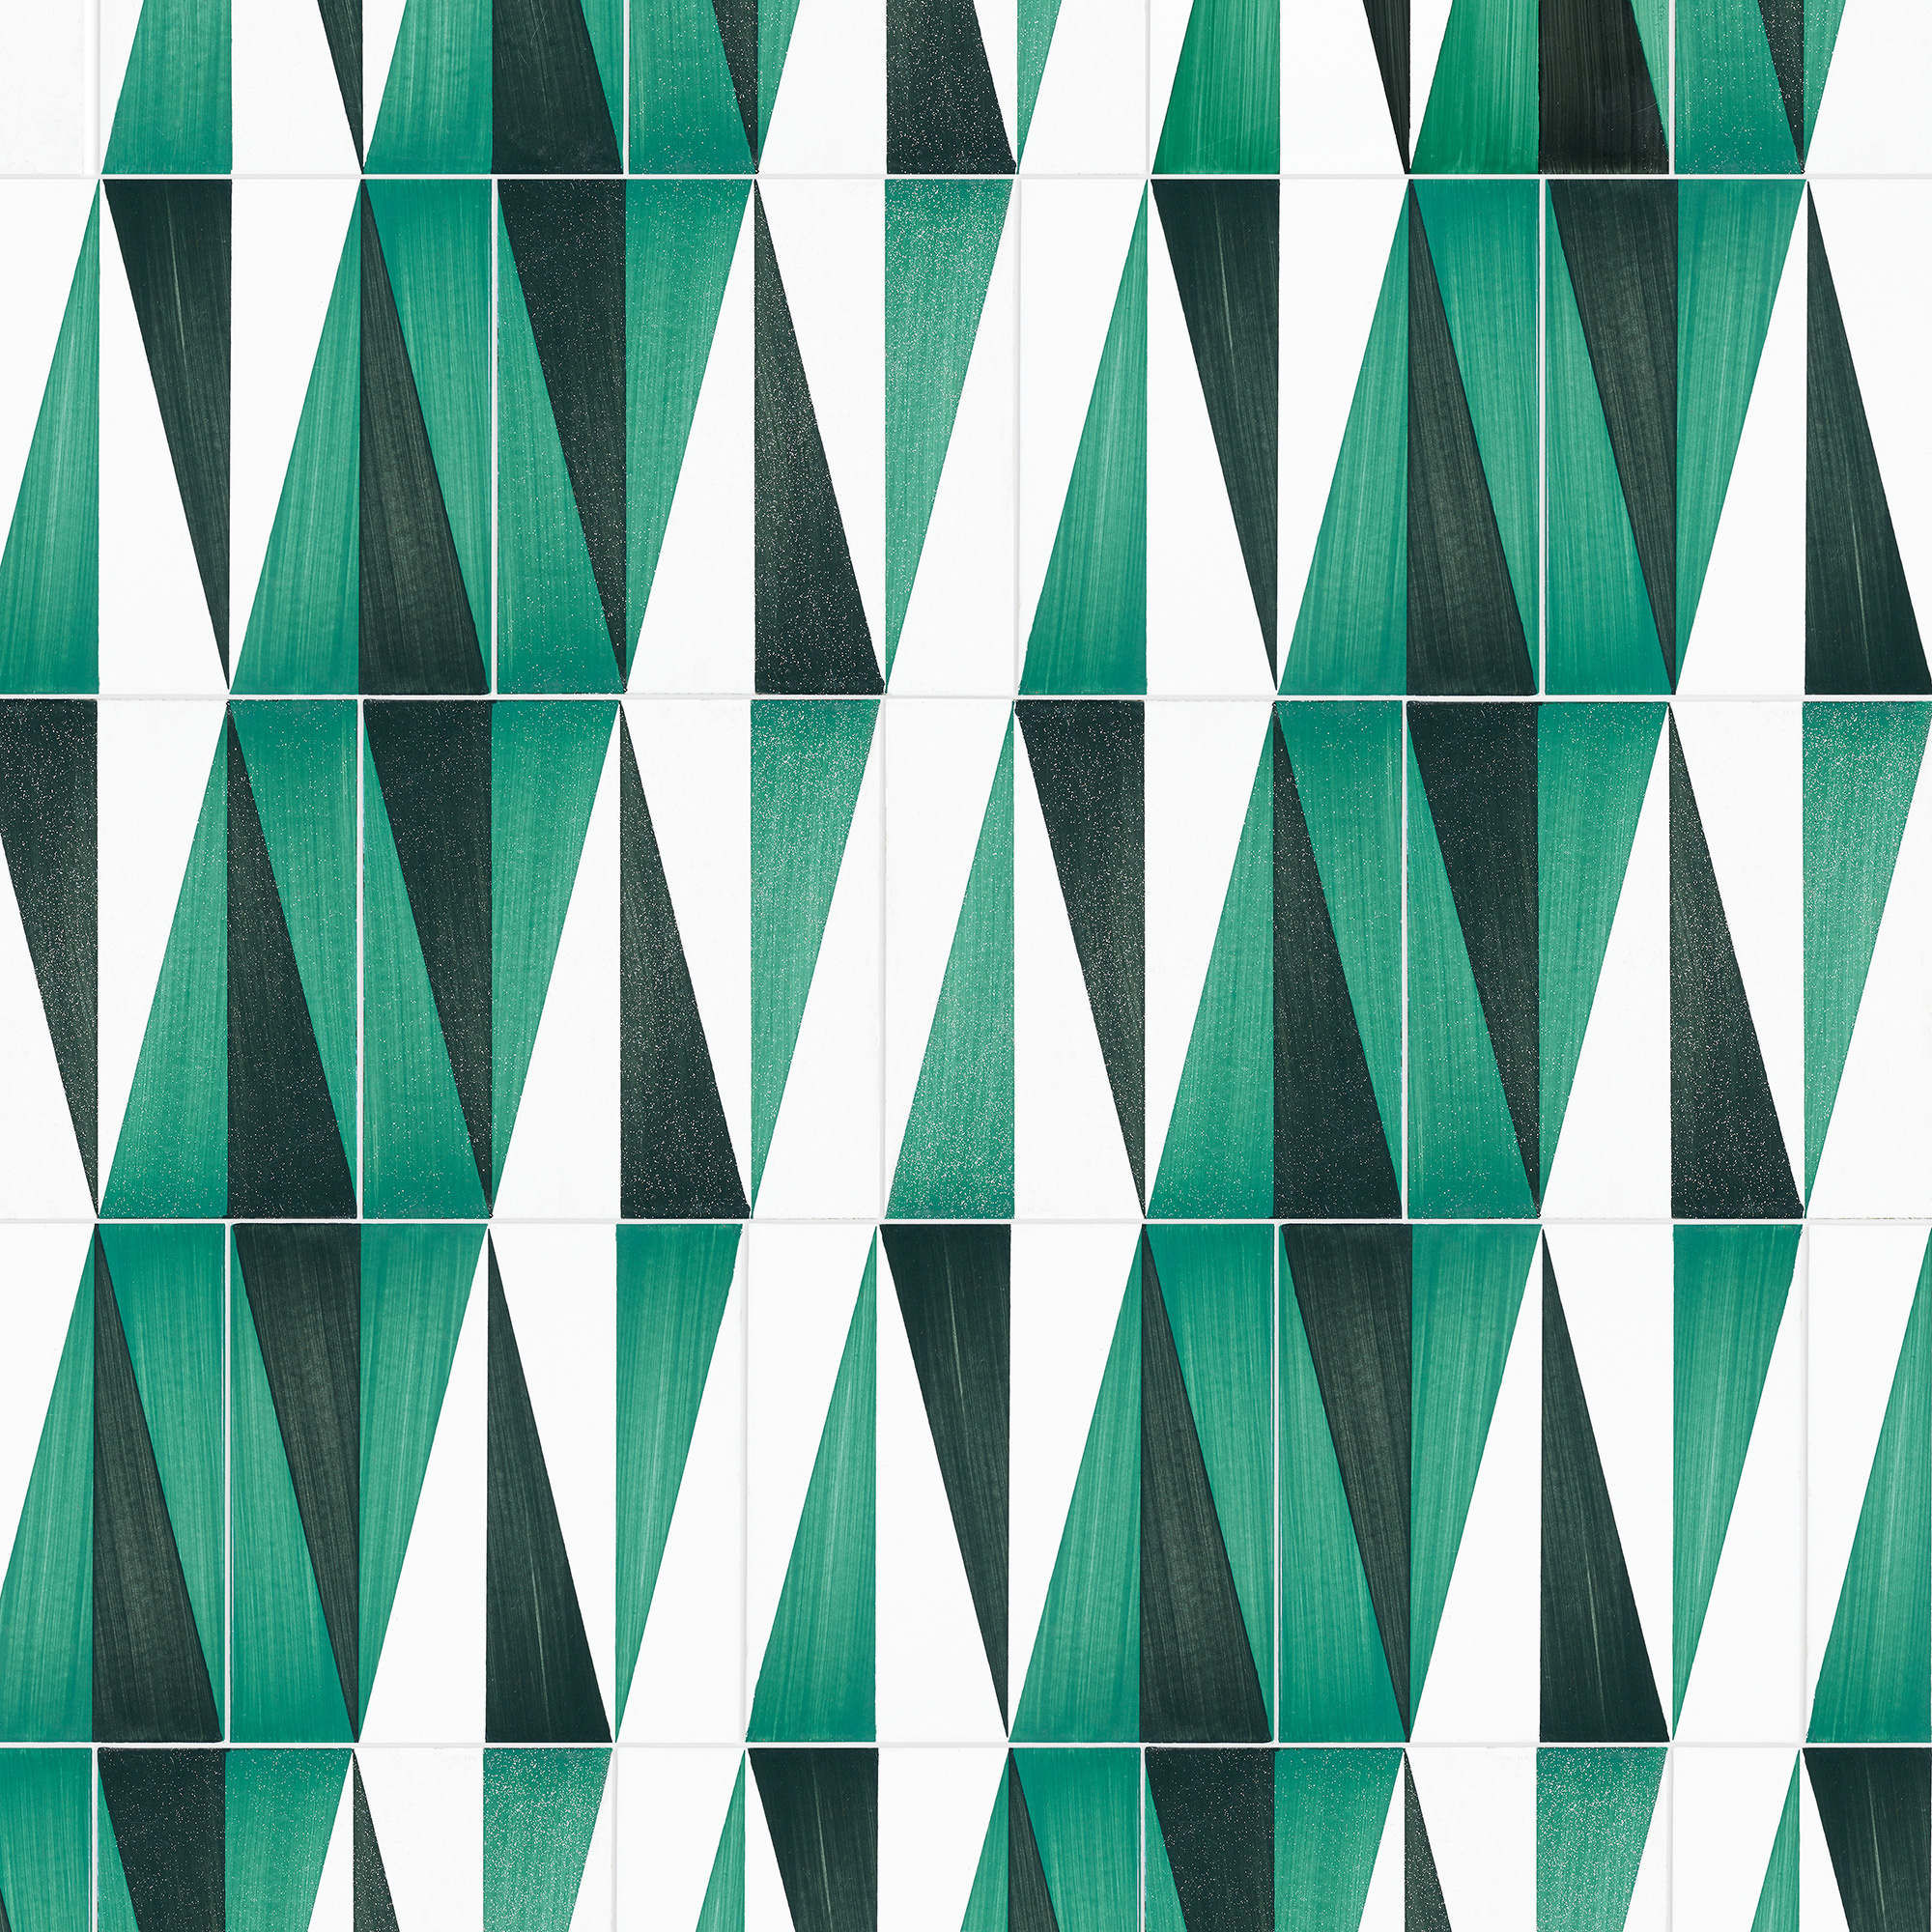 215 gio ponti collection of 175 tiles from the hotel - Gio ponti piastrelle ...